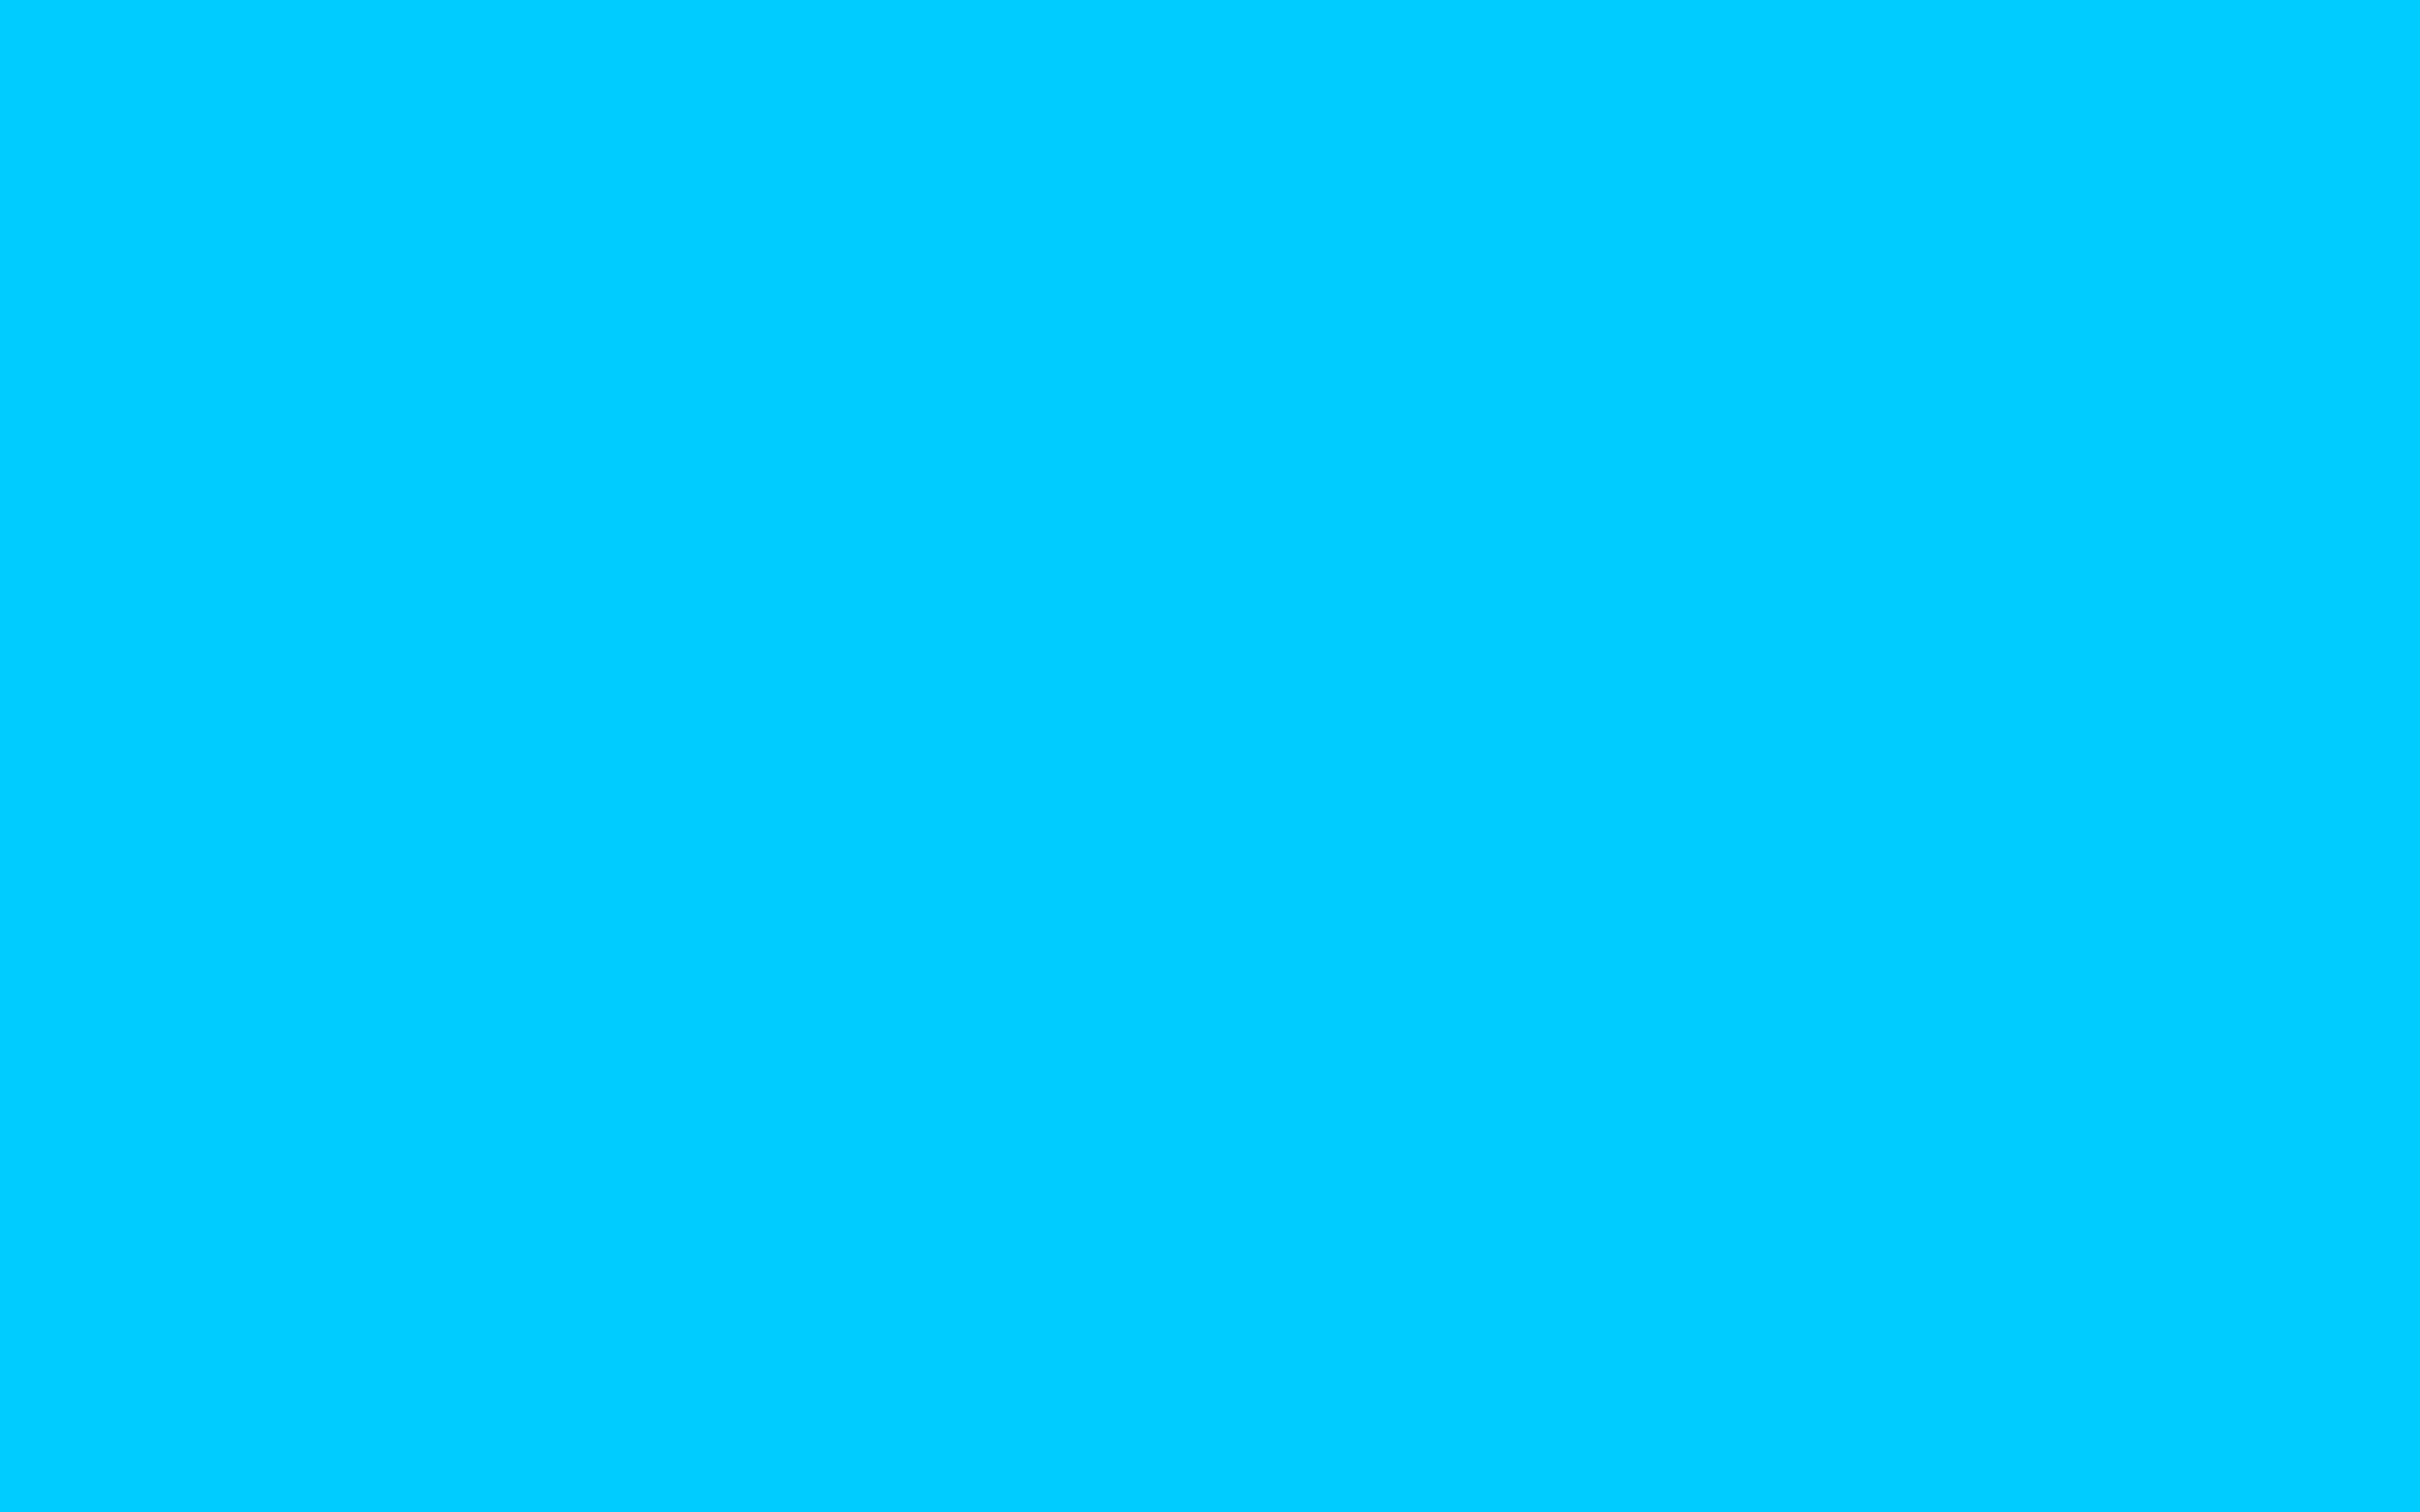 essay on sky blue color How does bass construct and support his color and sky looks blue essay - 1102 words | majortests essay on sky and blue skies  the higher the power.